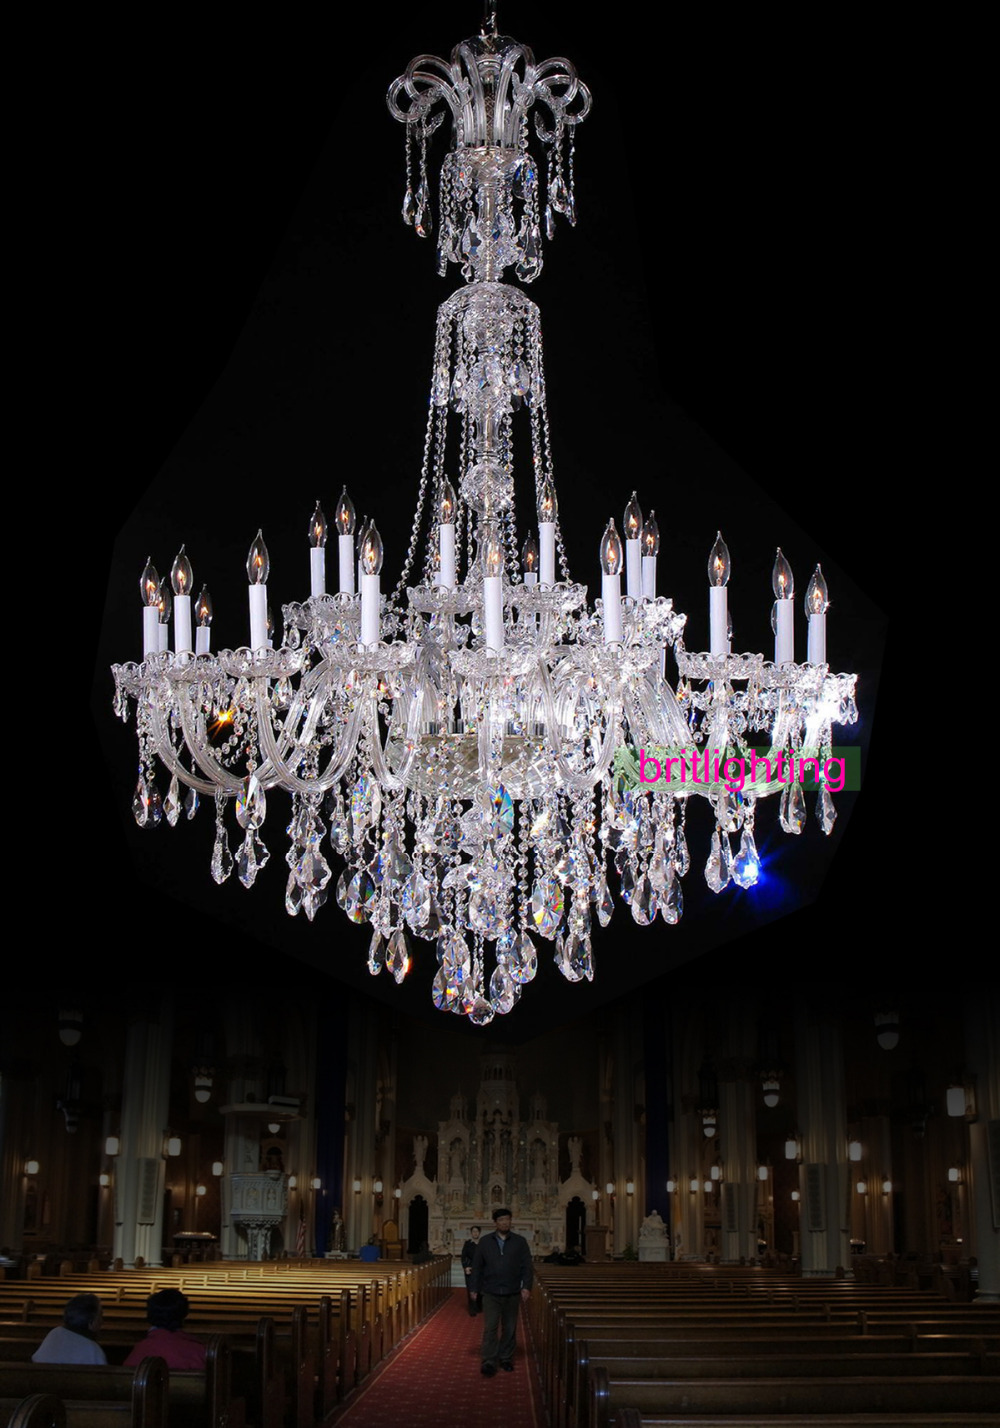 Large chandelier with crystal pendants big lamp for hotel extra large chandelier with crystal pendants big lamp for hotel extra large crystal chandeliers for church modern hanging chandelier in chandeliers from lights arubaitofo Image collections